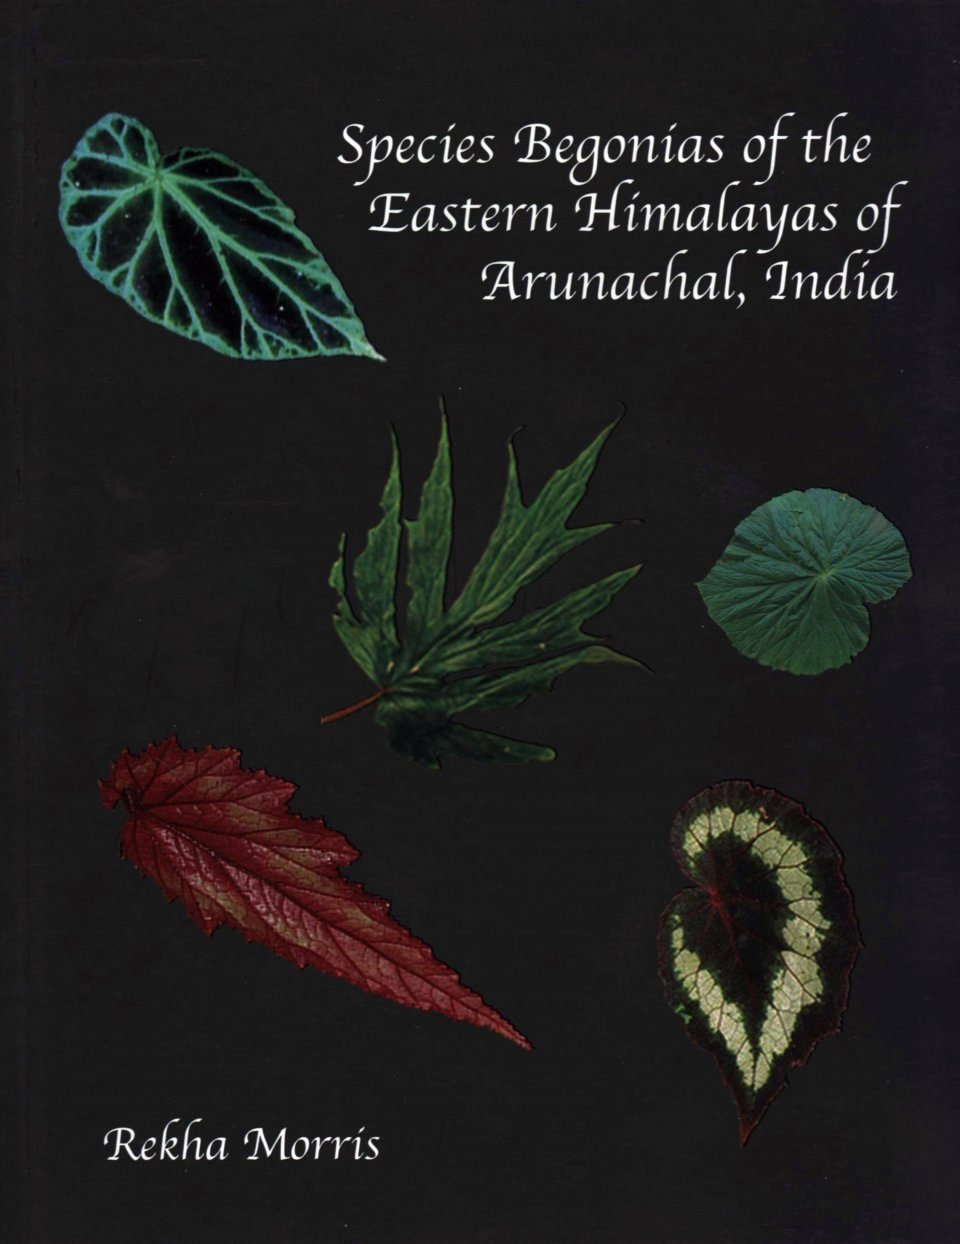 Species Begonias of the Eastern Himalayas of Arunachal, India